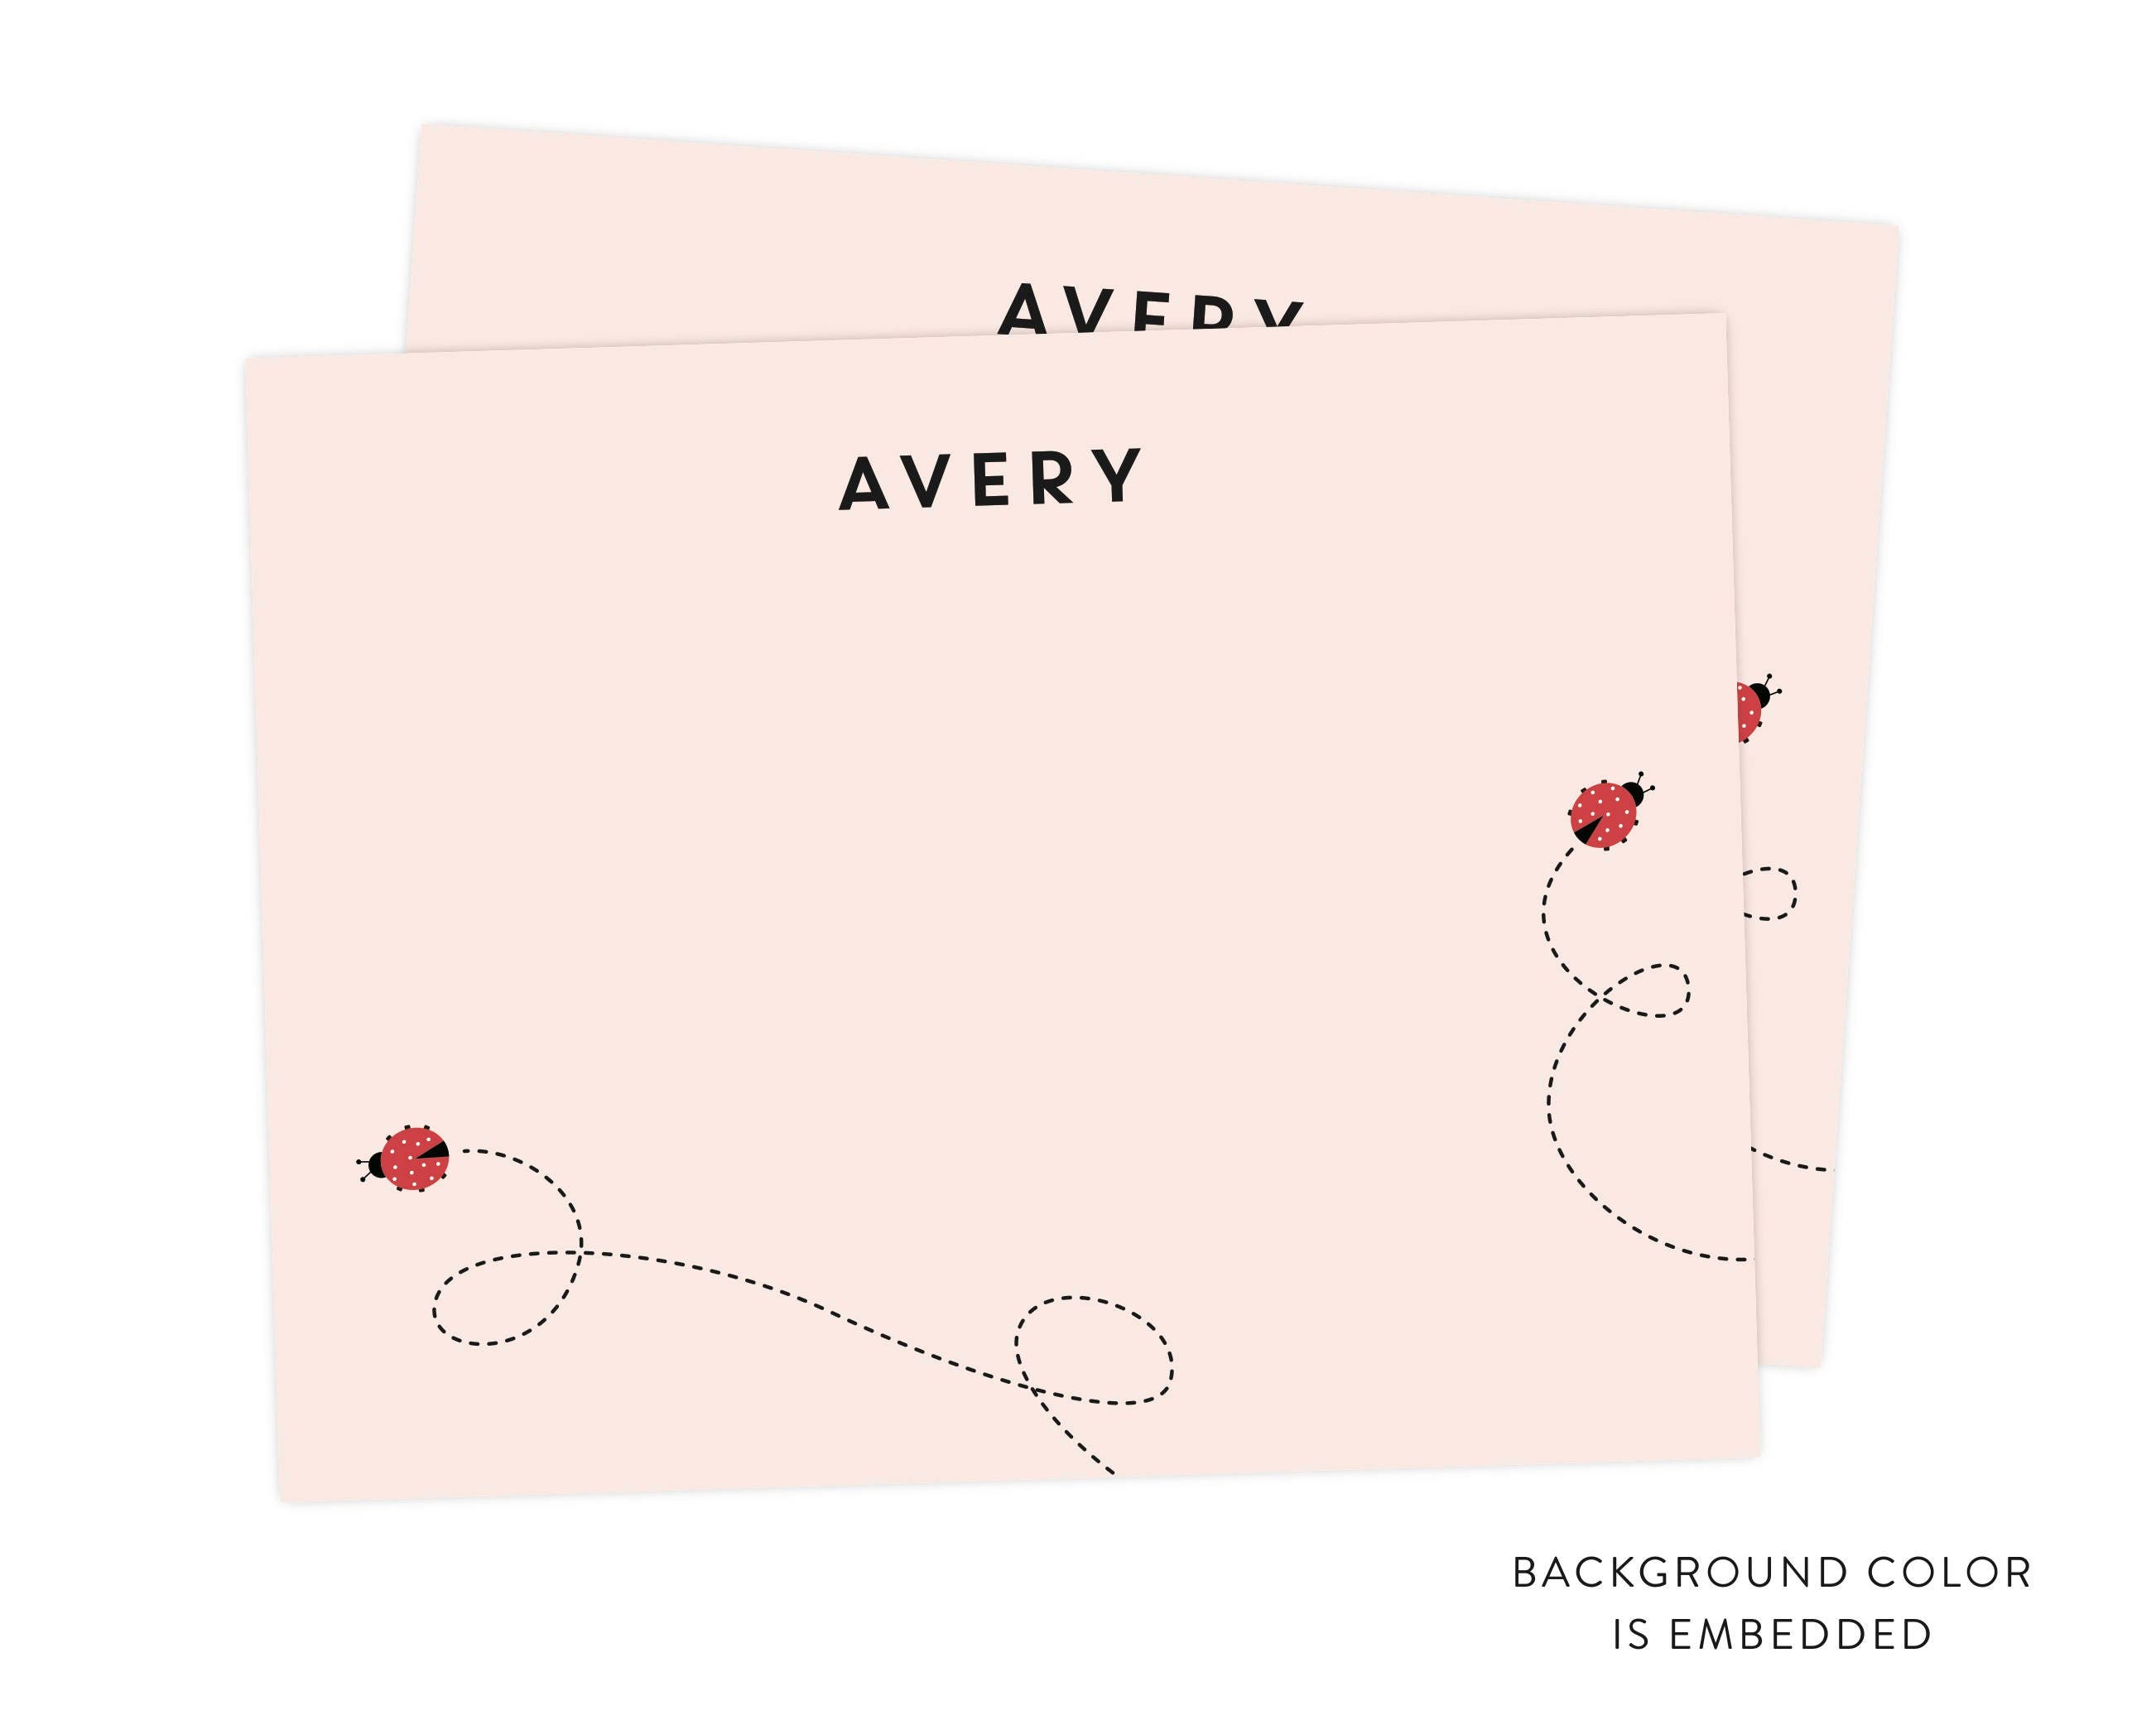 graphic relating to Printable Ladybug titled Printable Ladybug Stationery Printable Ladybug Take note Playing cards, Ladybug Thank On your own, Electronic, Custom made Ladybug Stationery, Ladybug Observe Playing cards